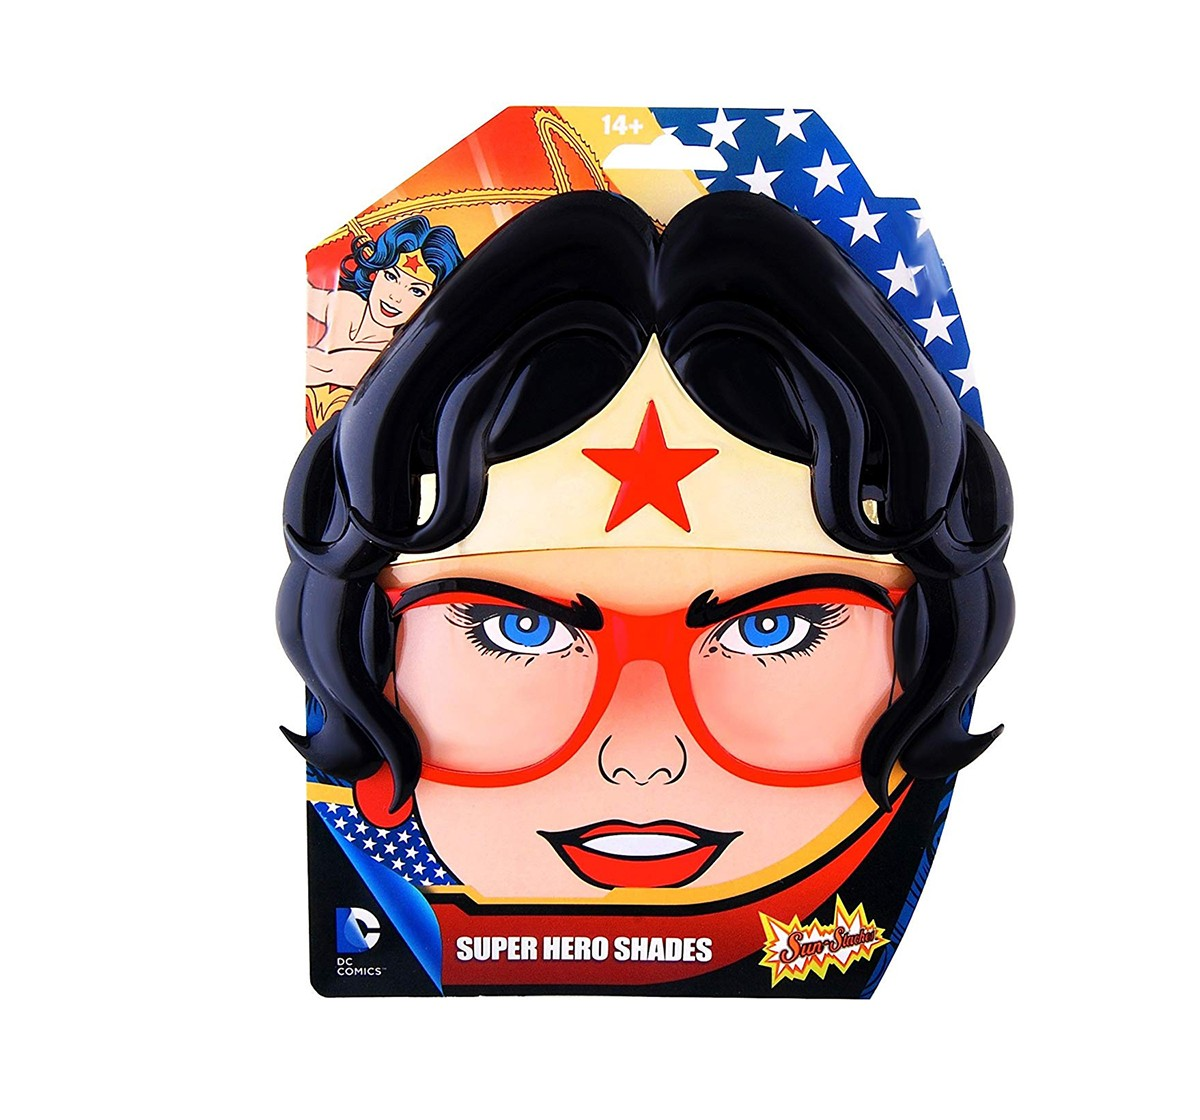 Dc Sun Staches Star Wonder Woman Sunstaches Novelty for Girls age 3Y+